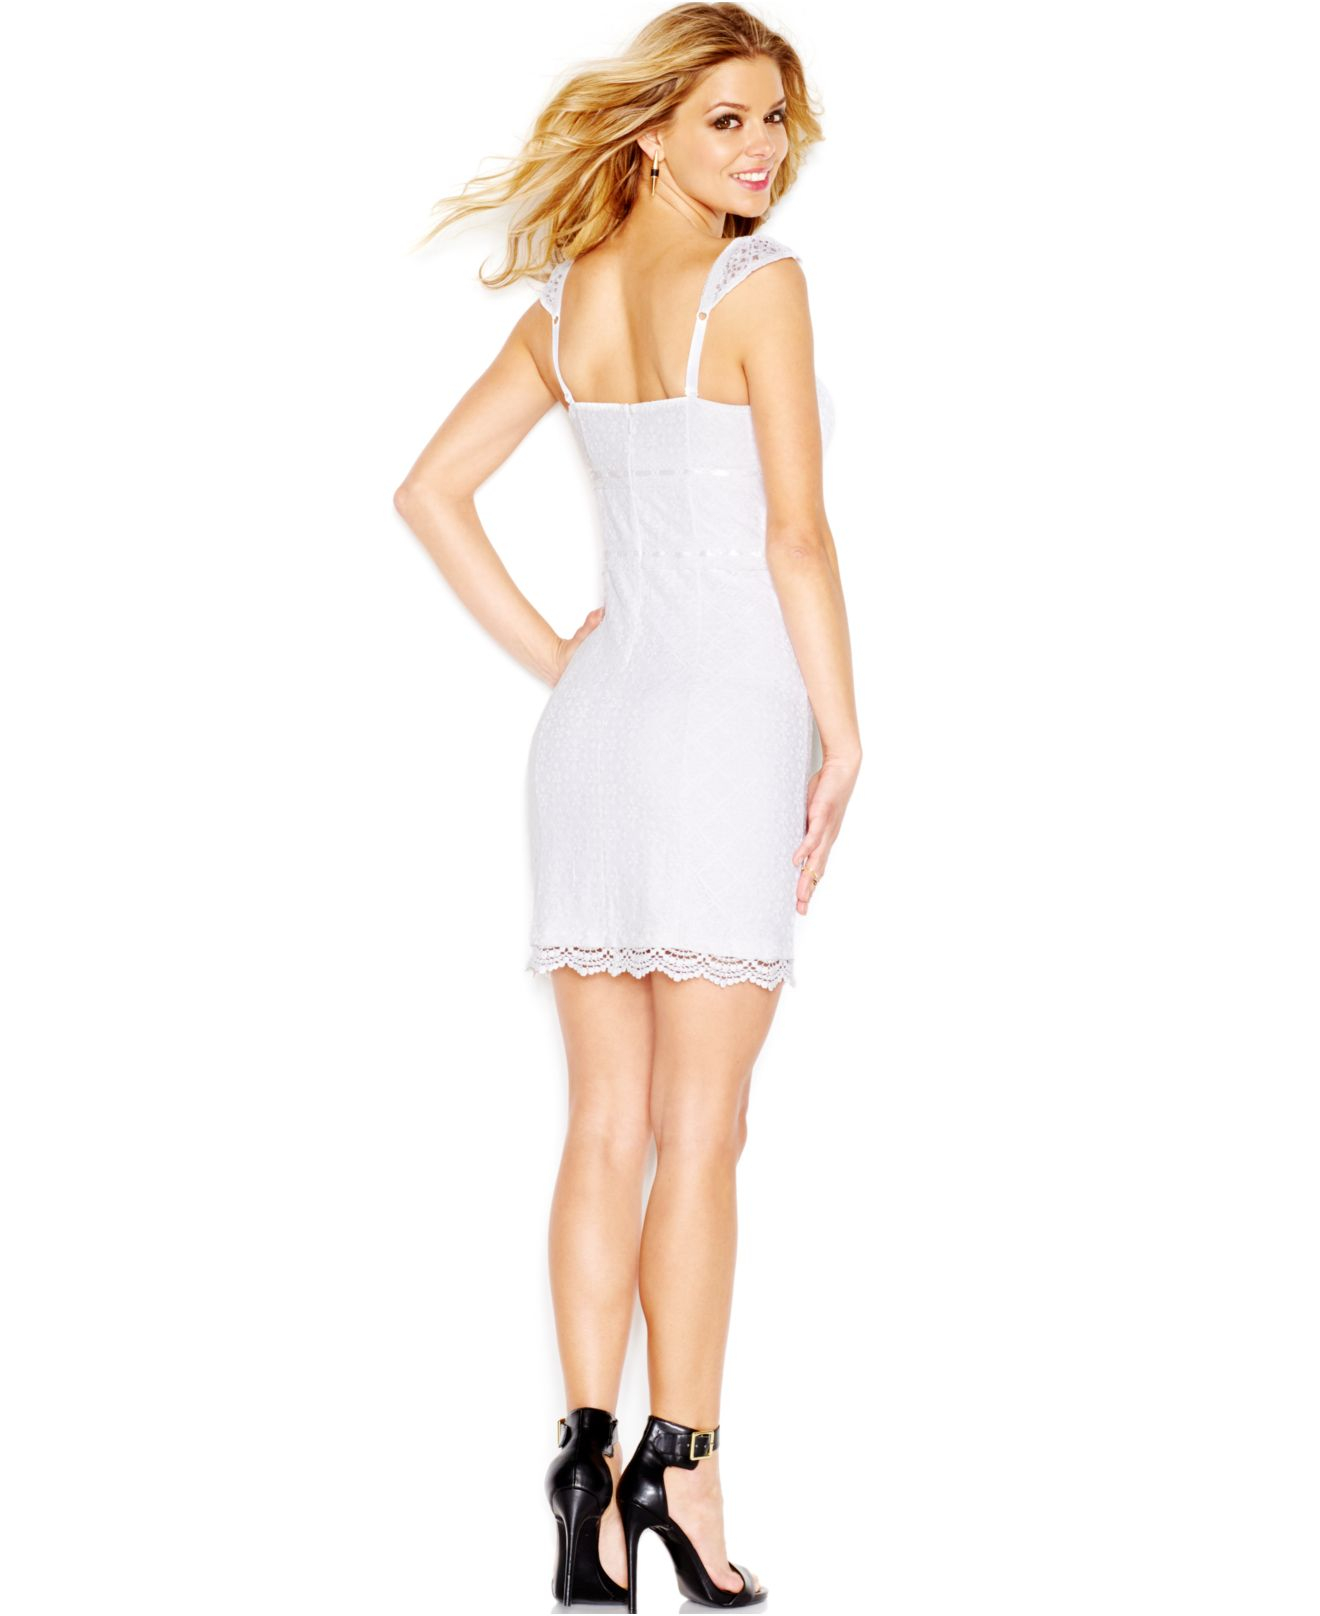 Lyst - Guess Lace Corset Dress in White